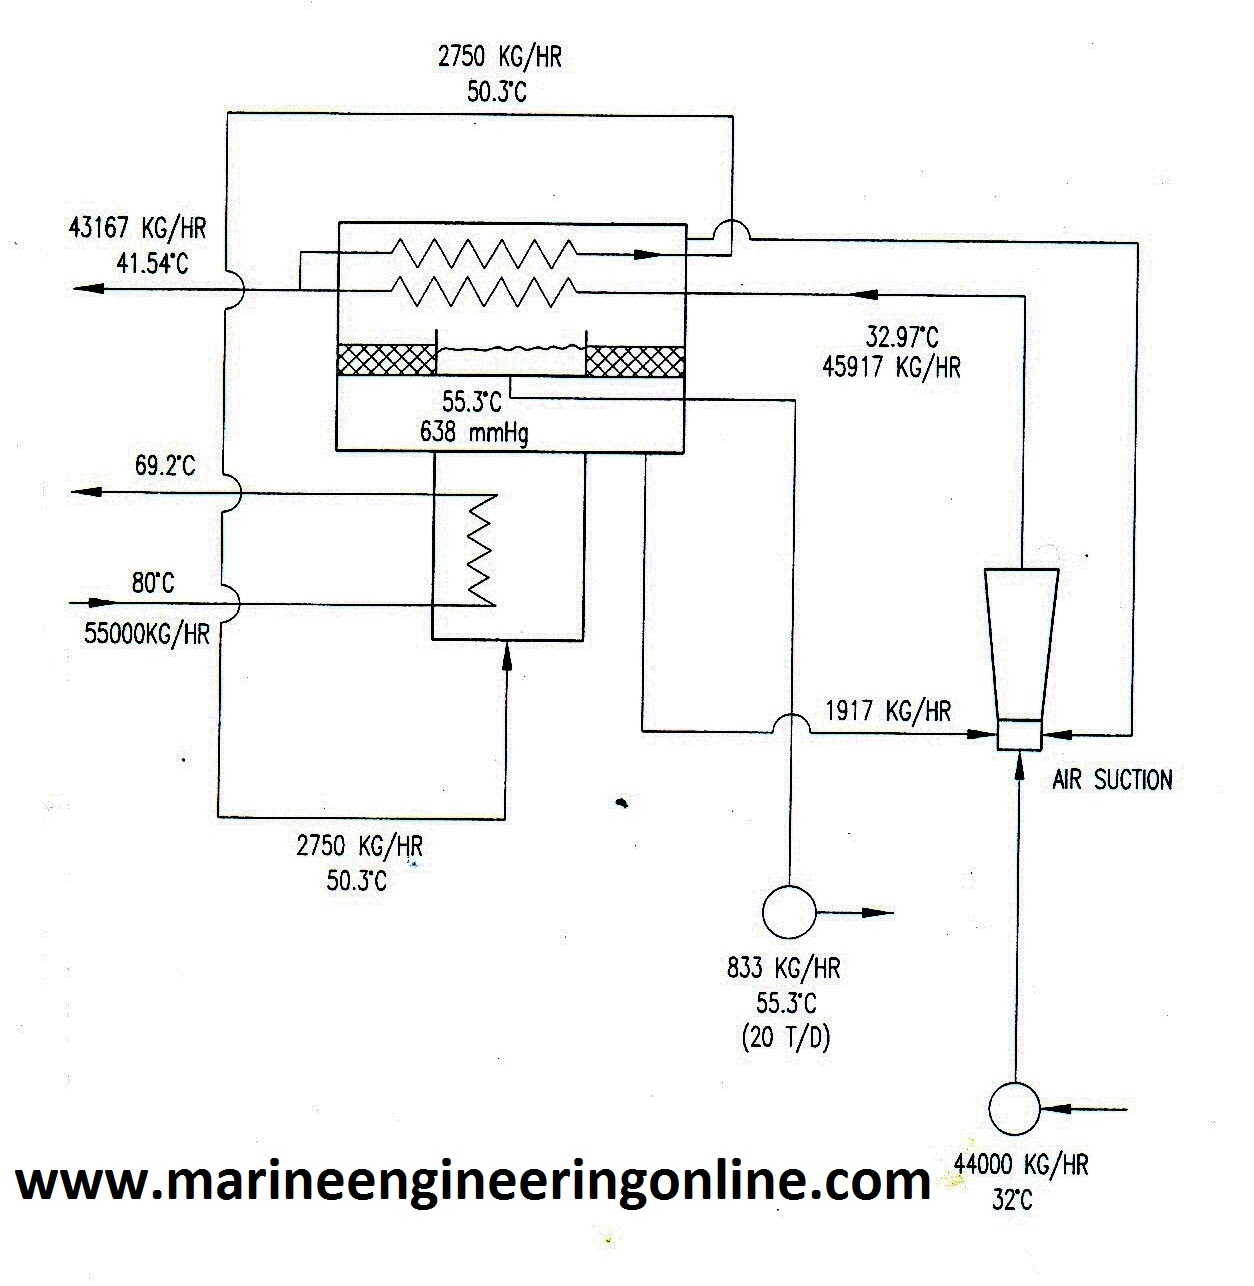 water cooler wiring diagrams simple freshwater generator marine engineering study water cooler wiring diagram